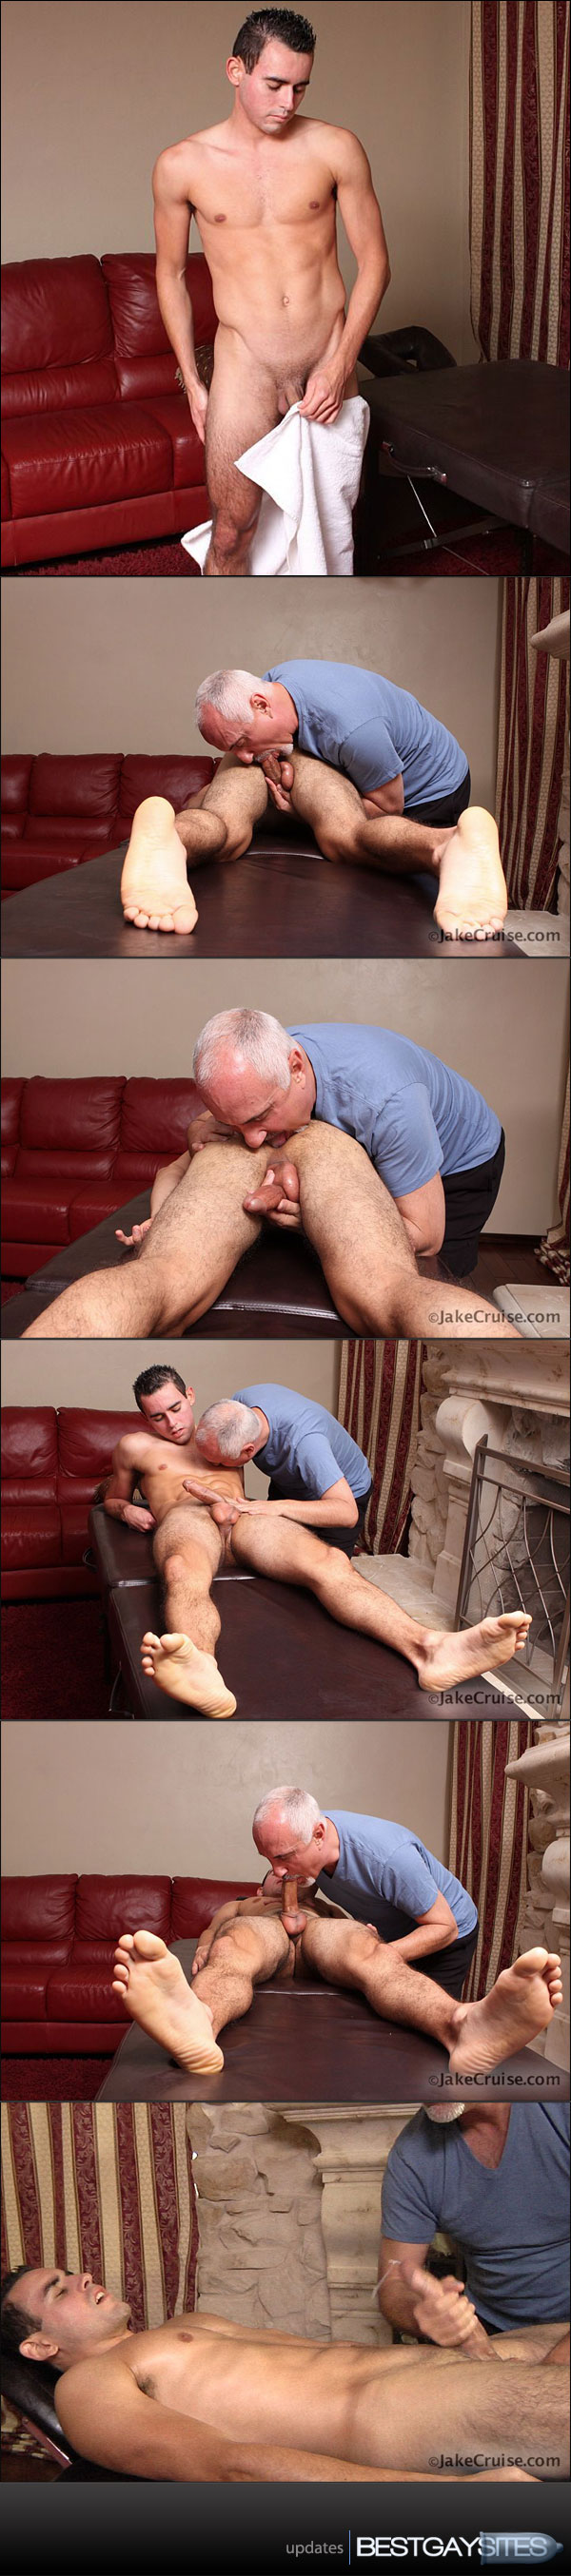 Jake Cruise - Jon Sylvanwood Gets Fully Treated